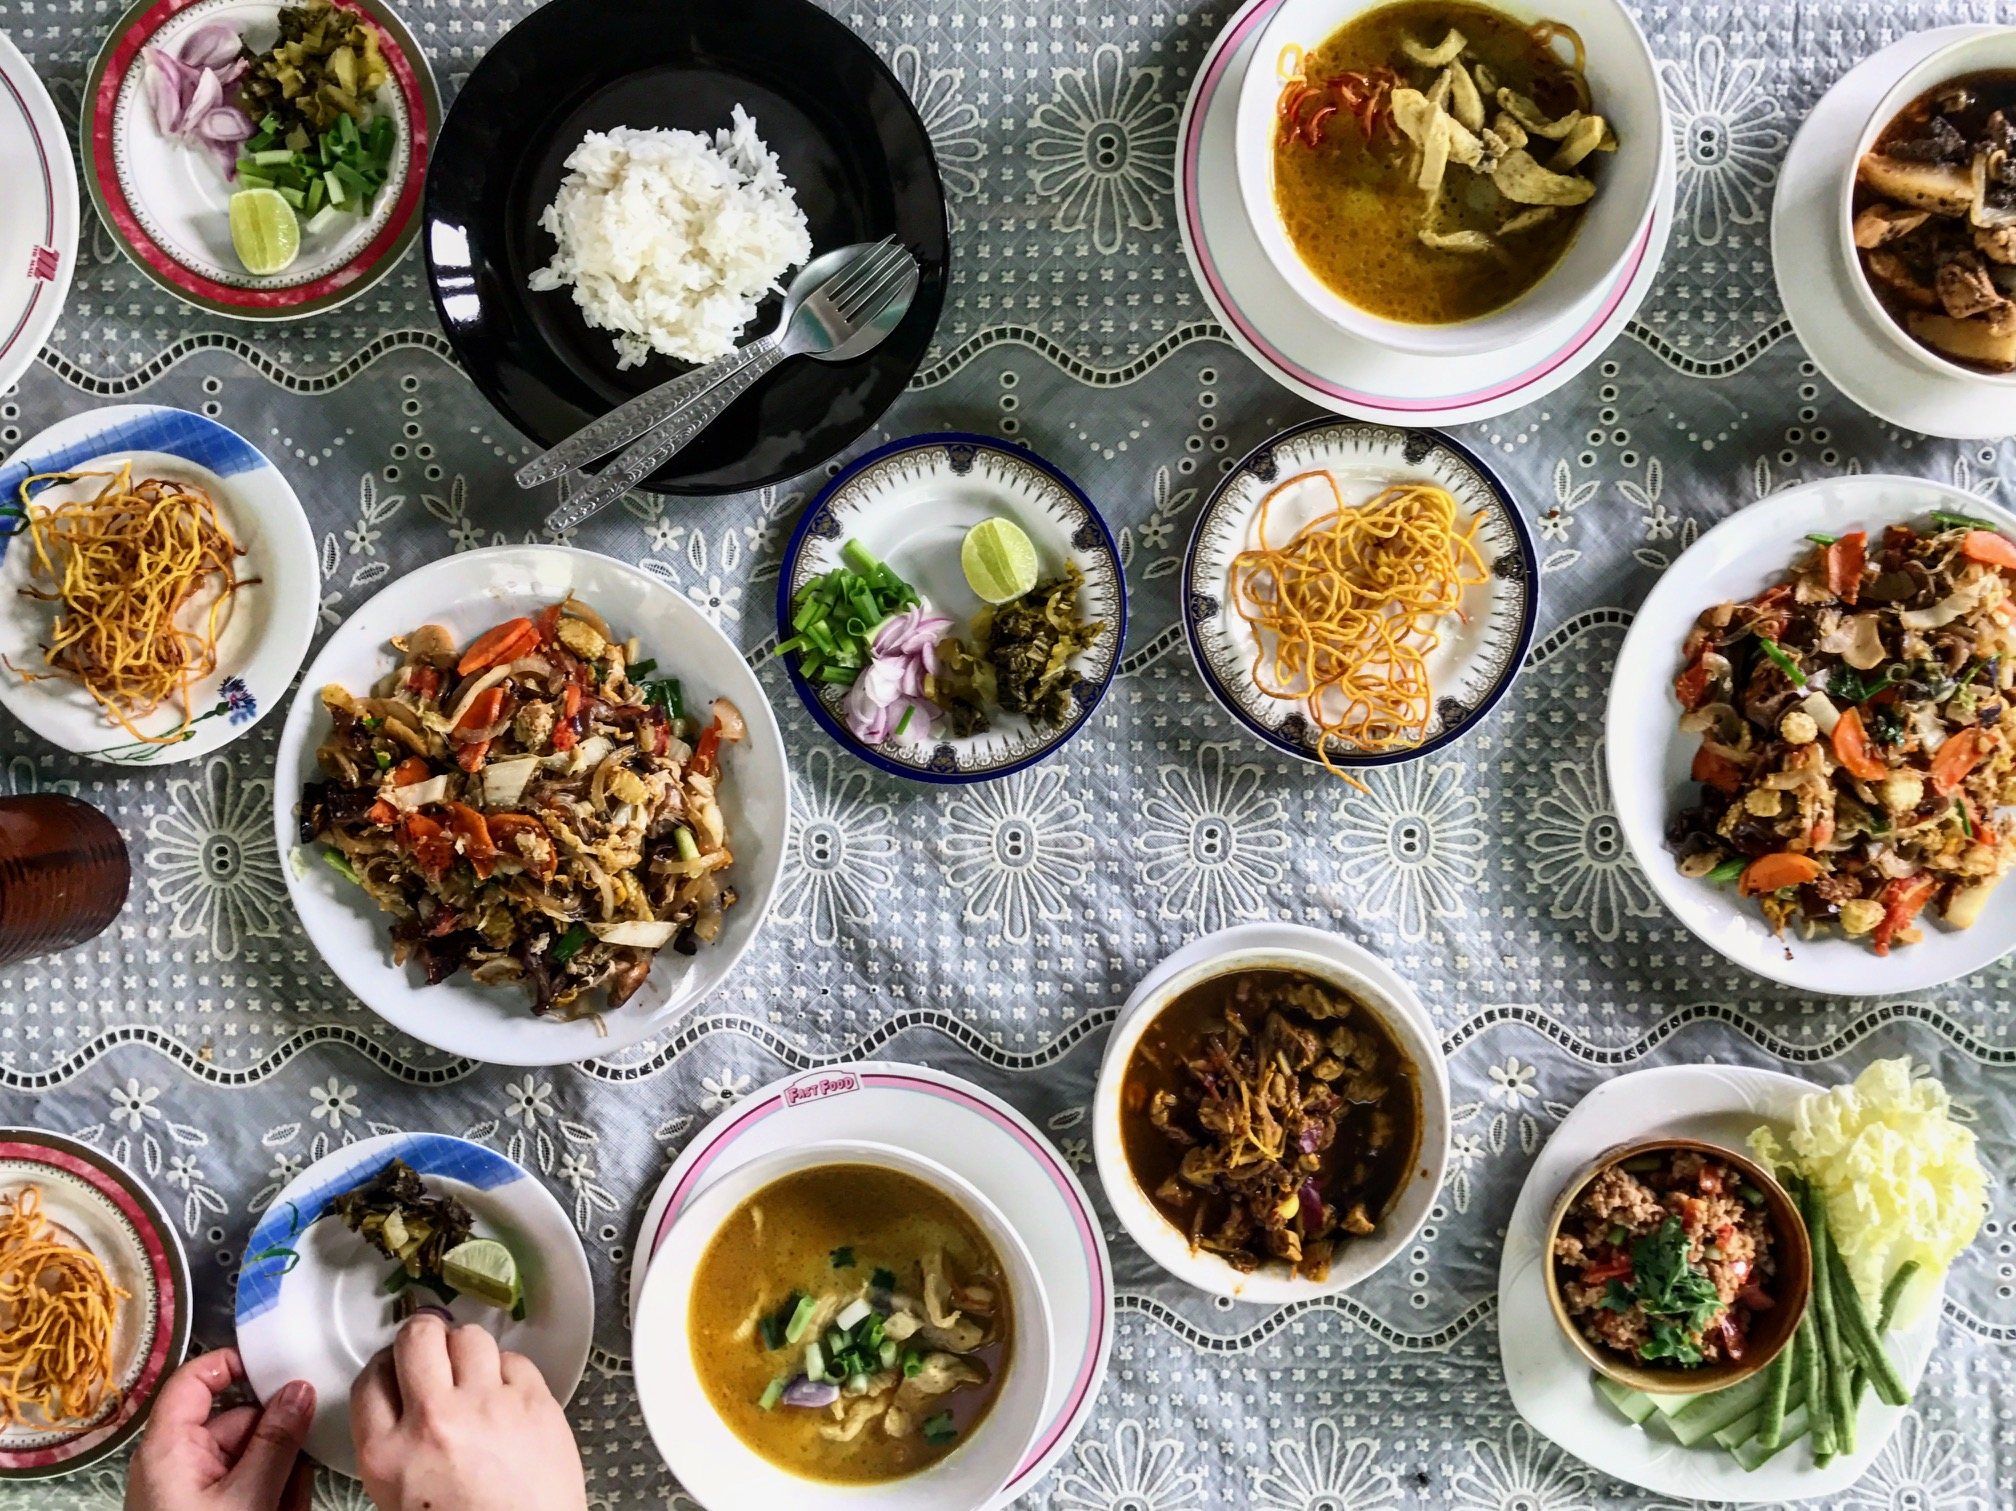 Our spread of Thai fantasies at  Vannee Classic Home Cooking